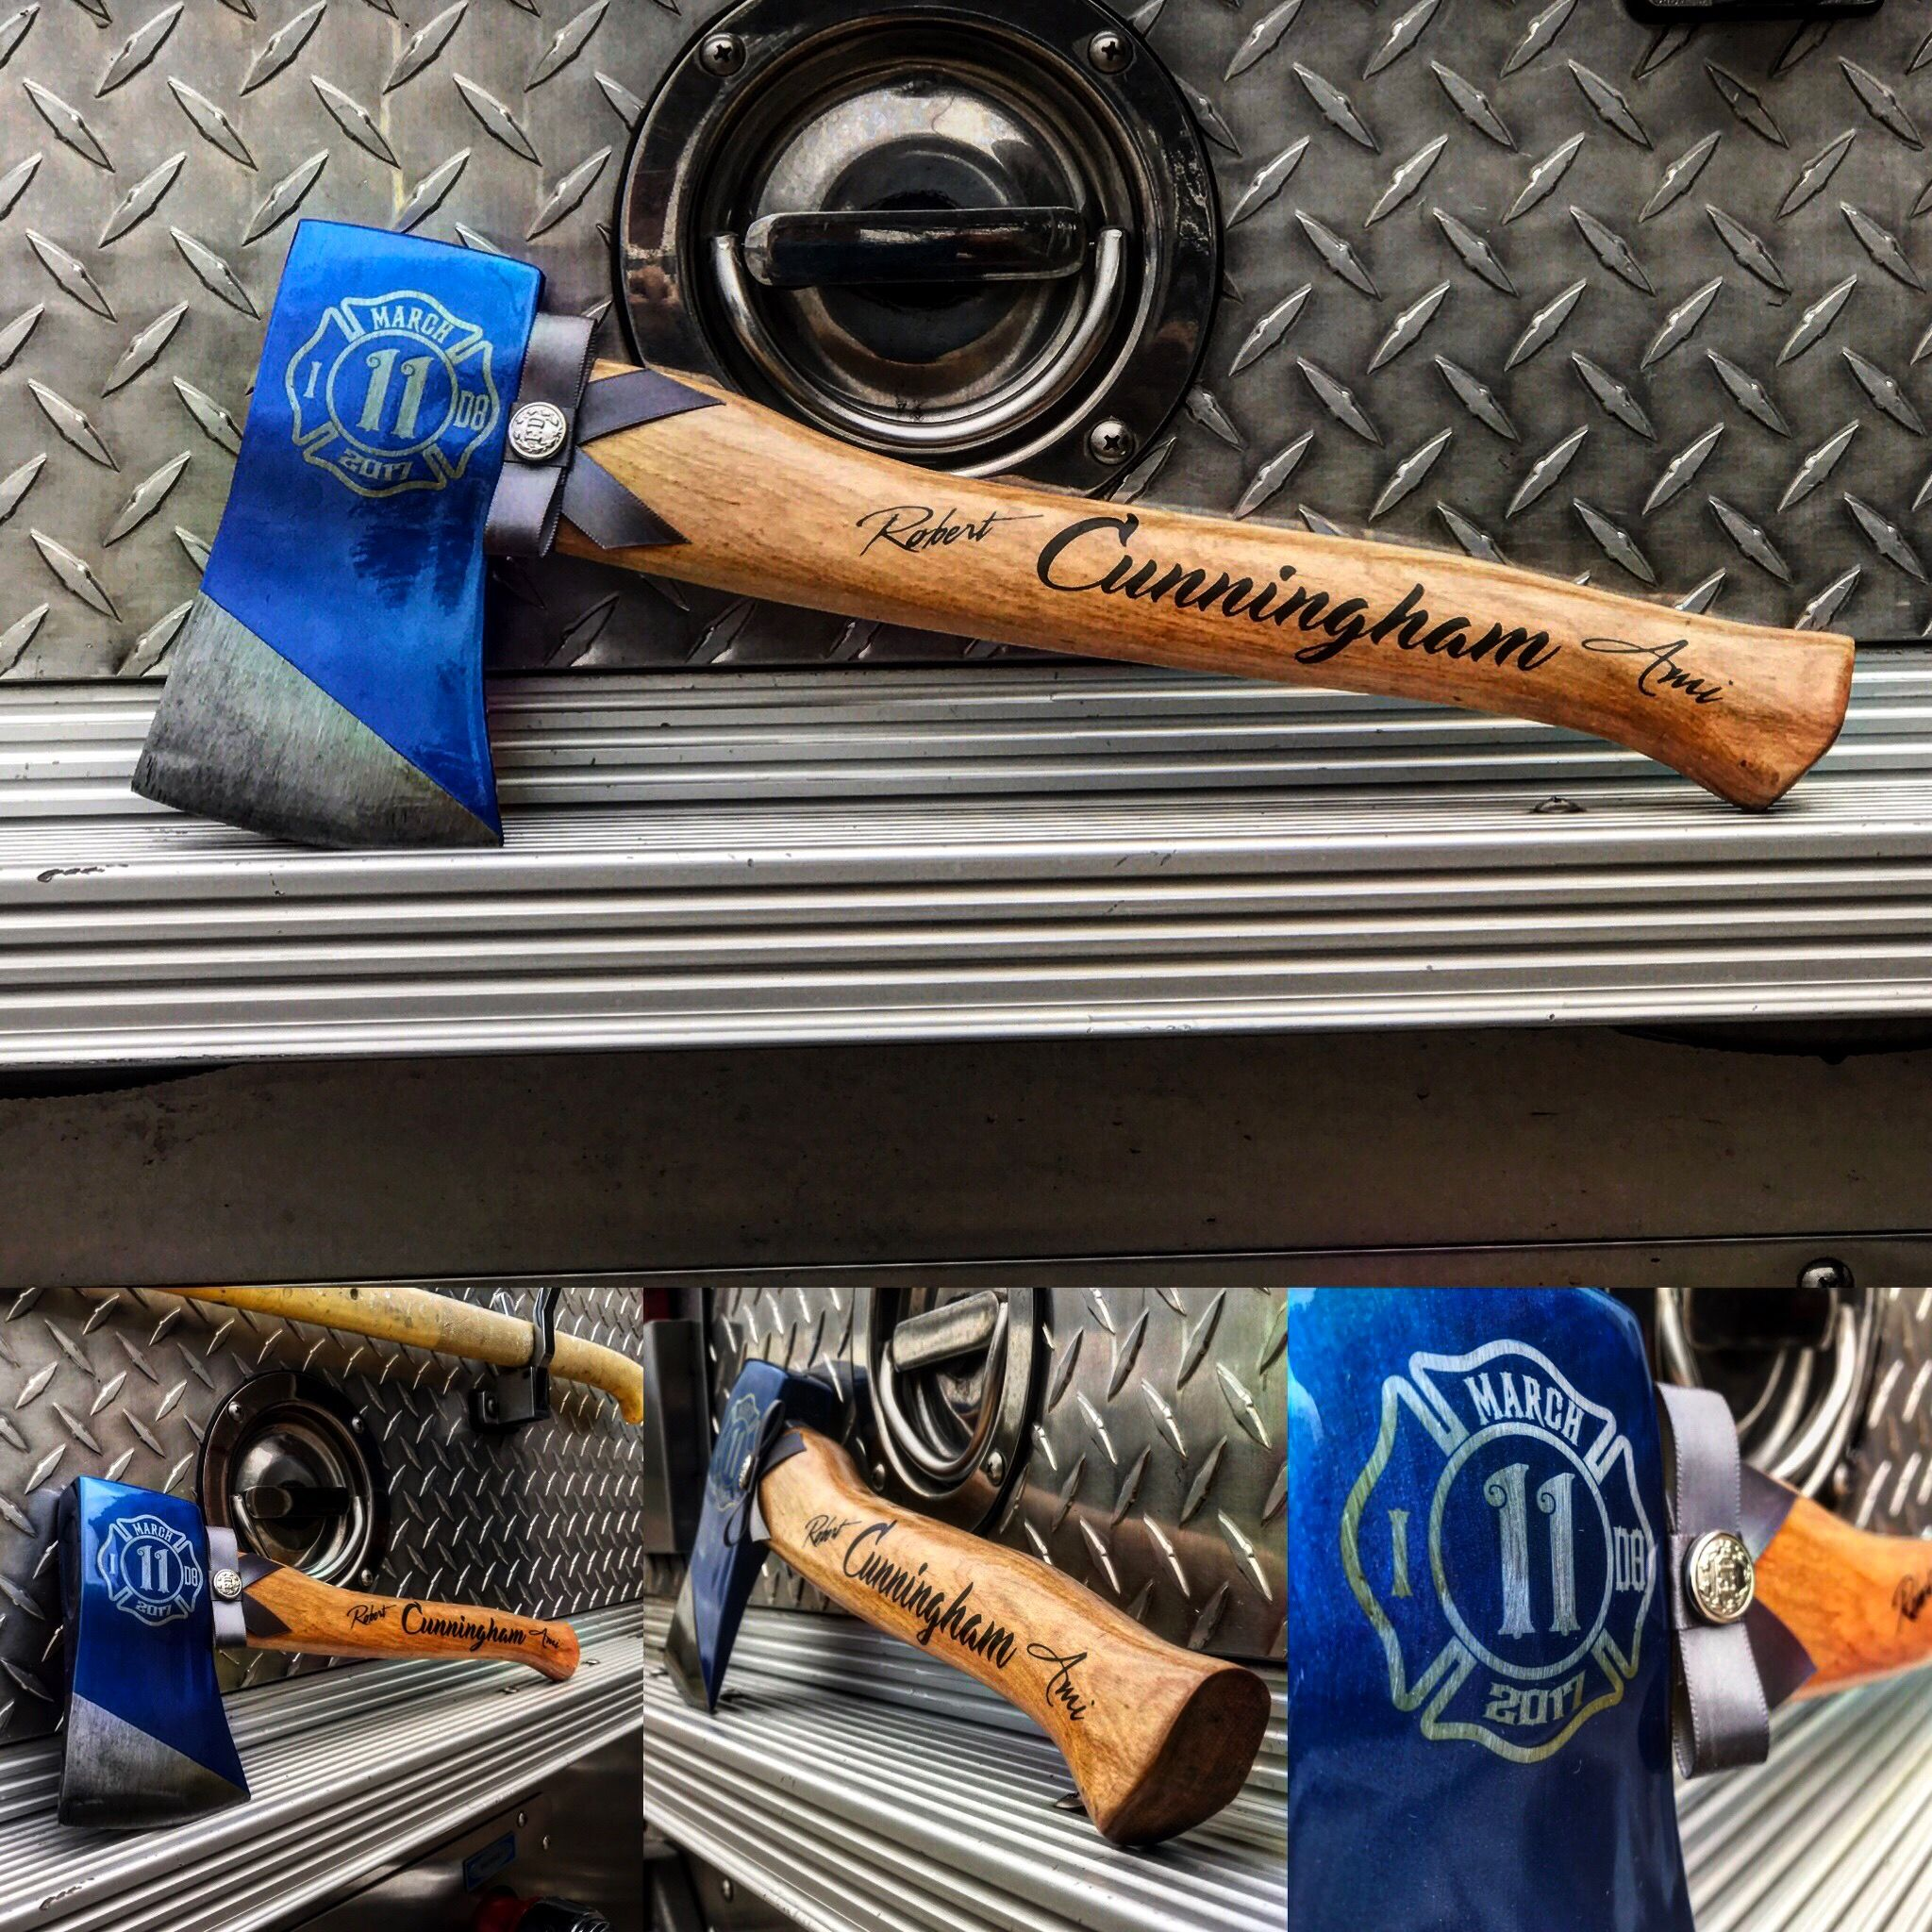 Firefighter Wedding Themes Ideas: Personalized Firefighter Wedding Axe Cake Cutter